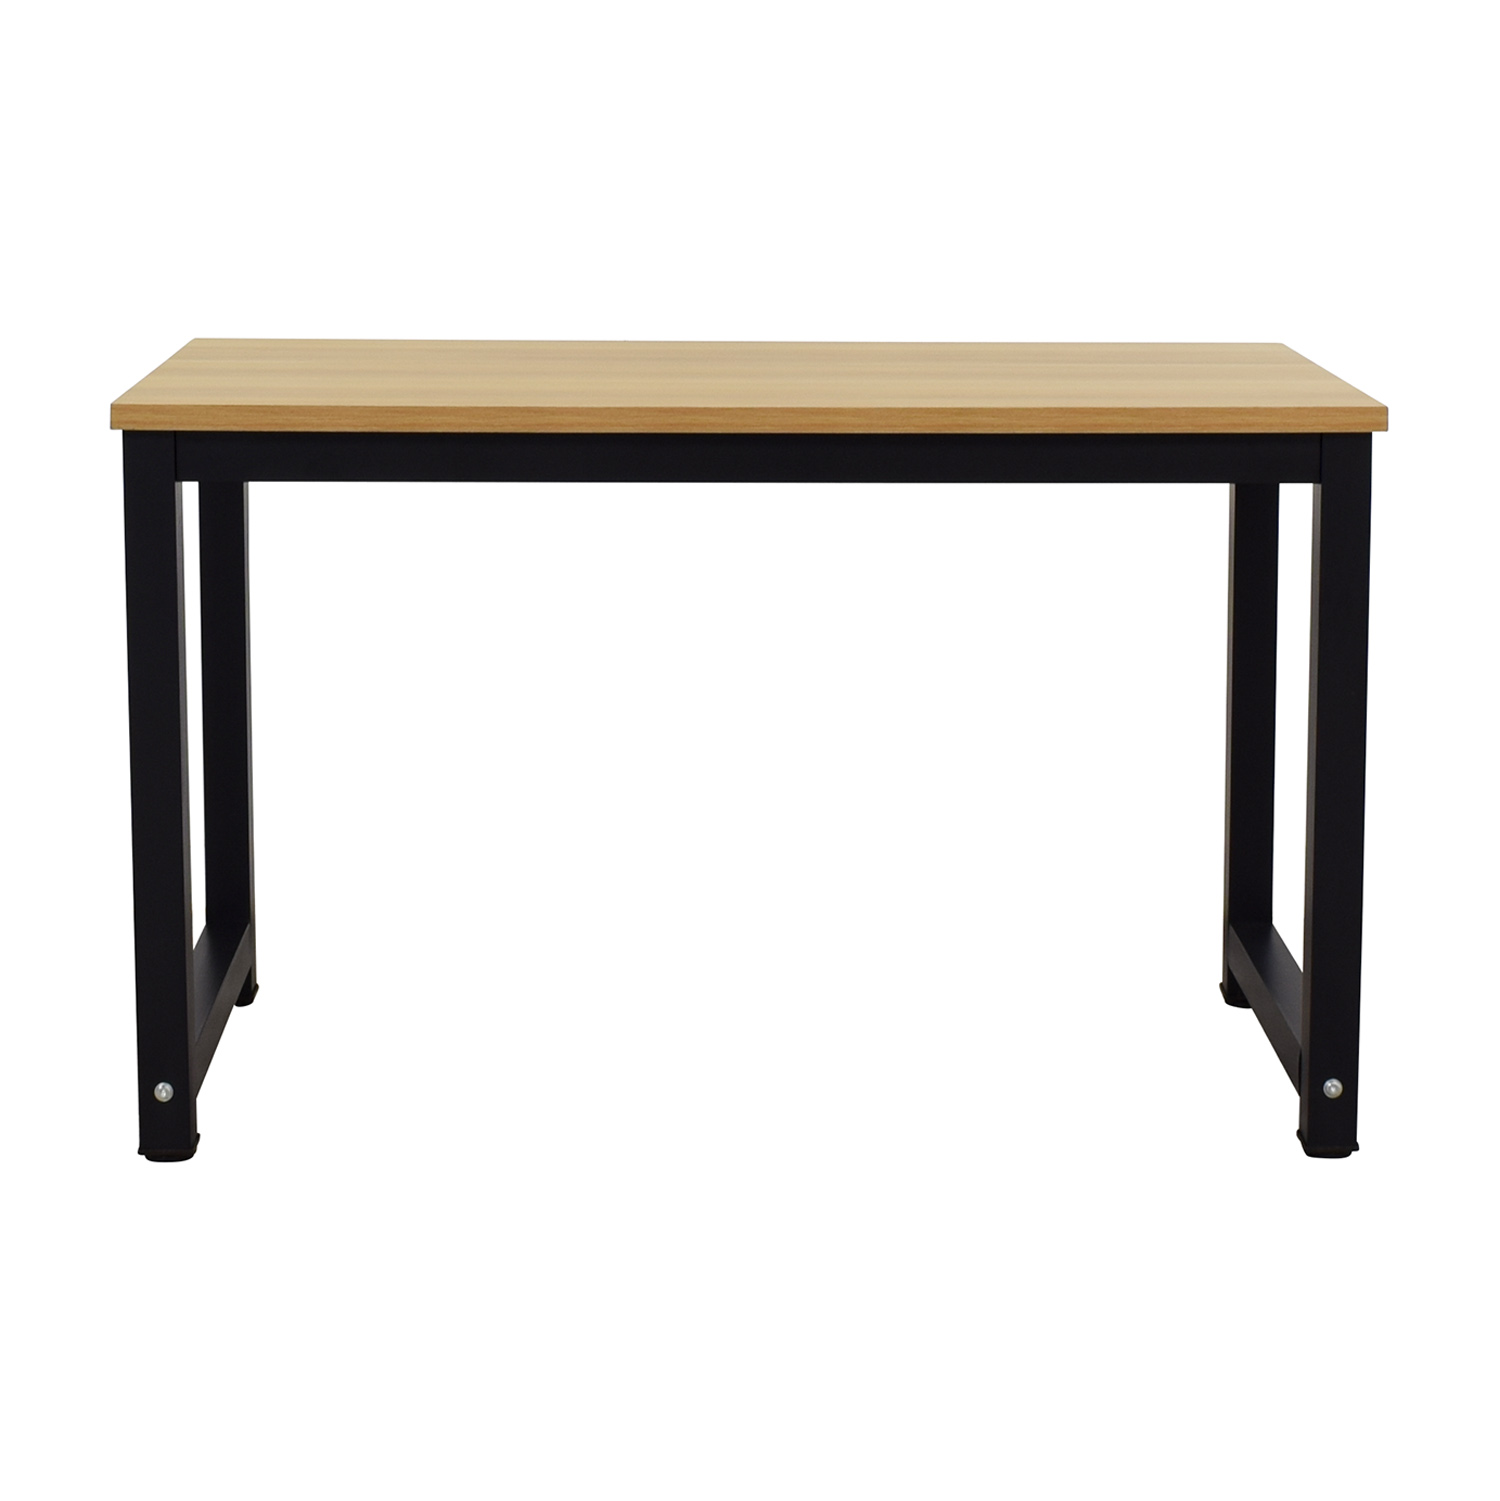 West Elm Box Frame Desk / Tables